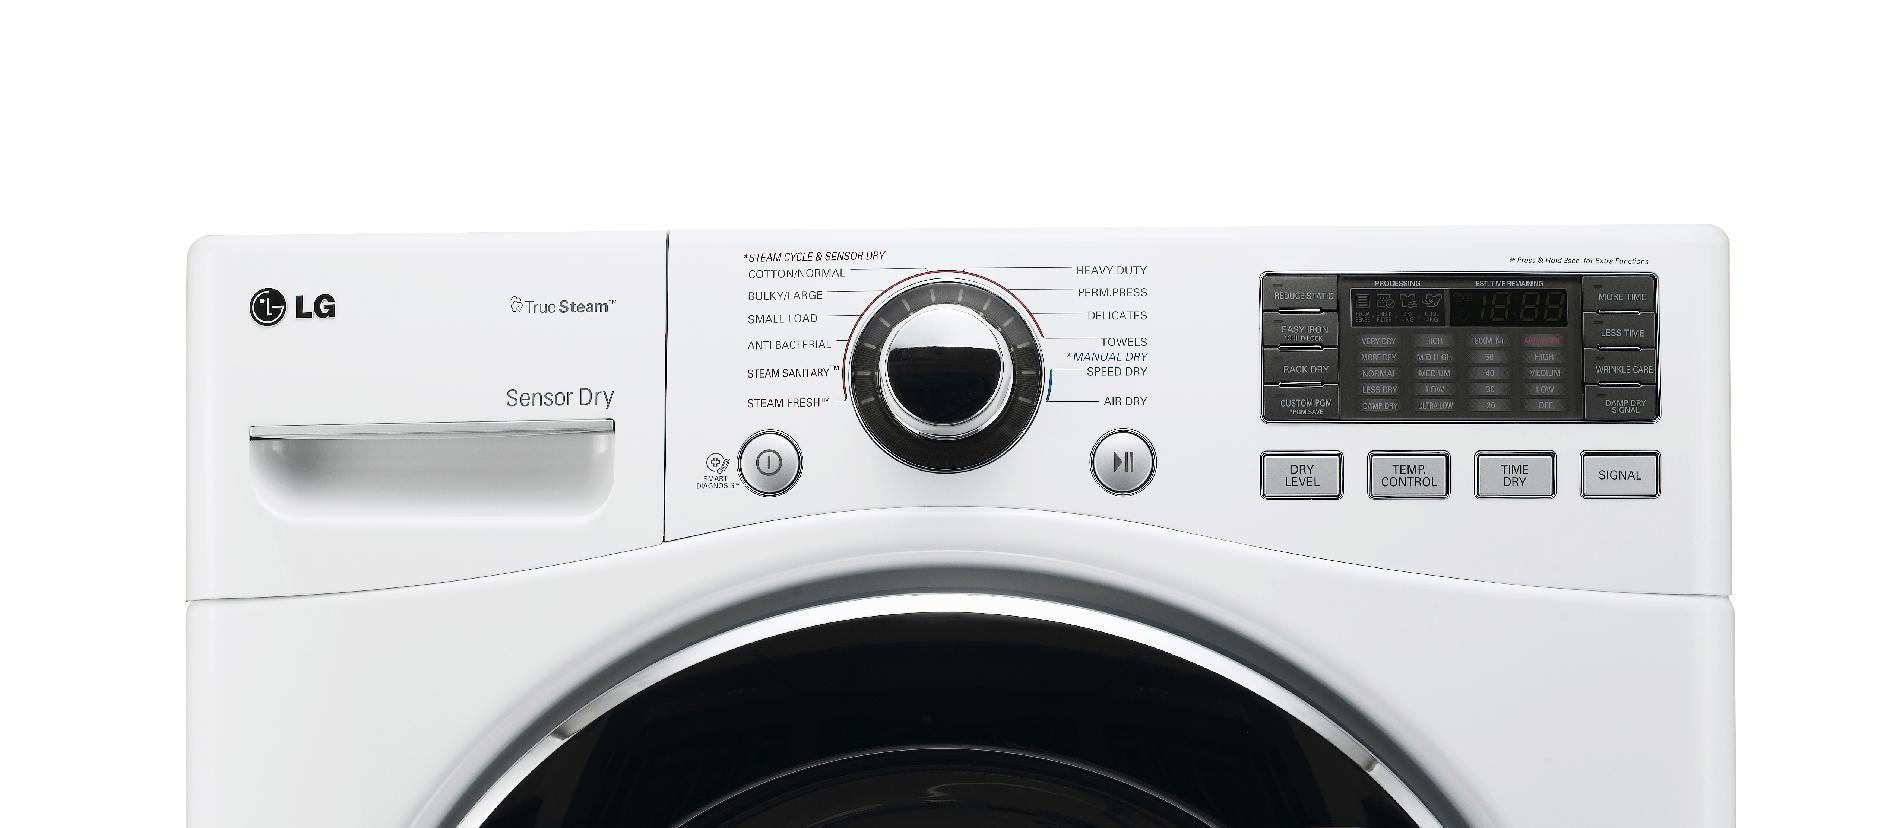 LG 7.3 cu. ft. Steam  Gas Dryer w/ Sensor Dry - White